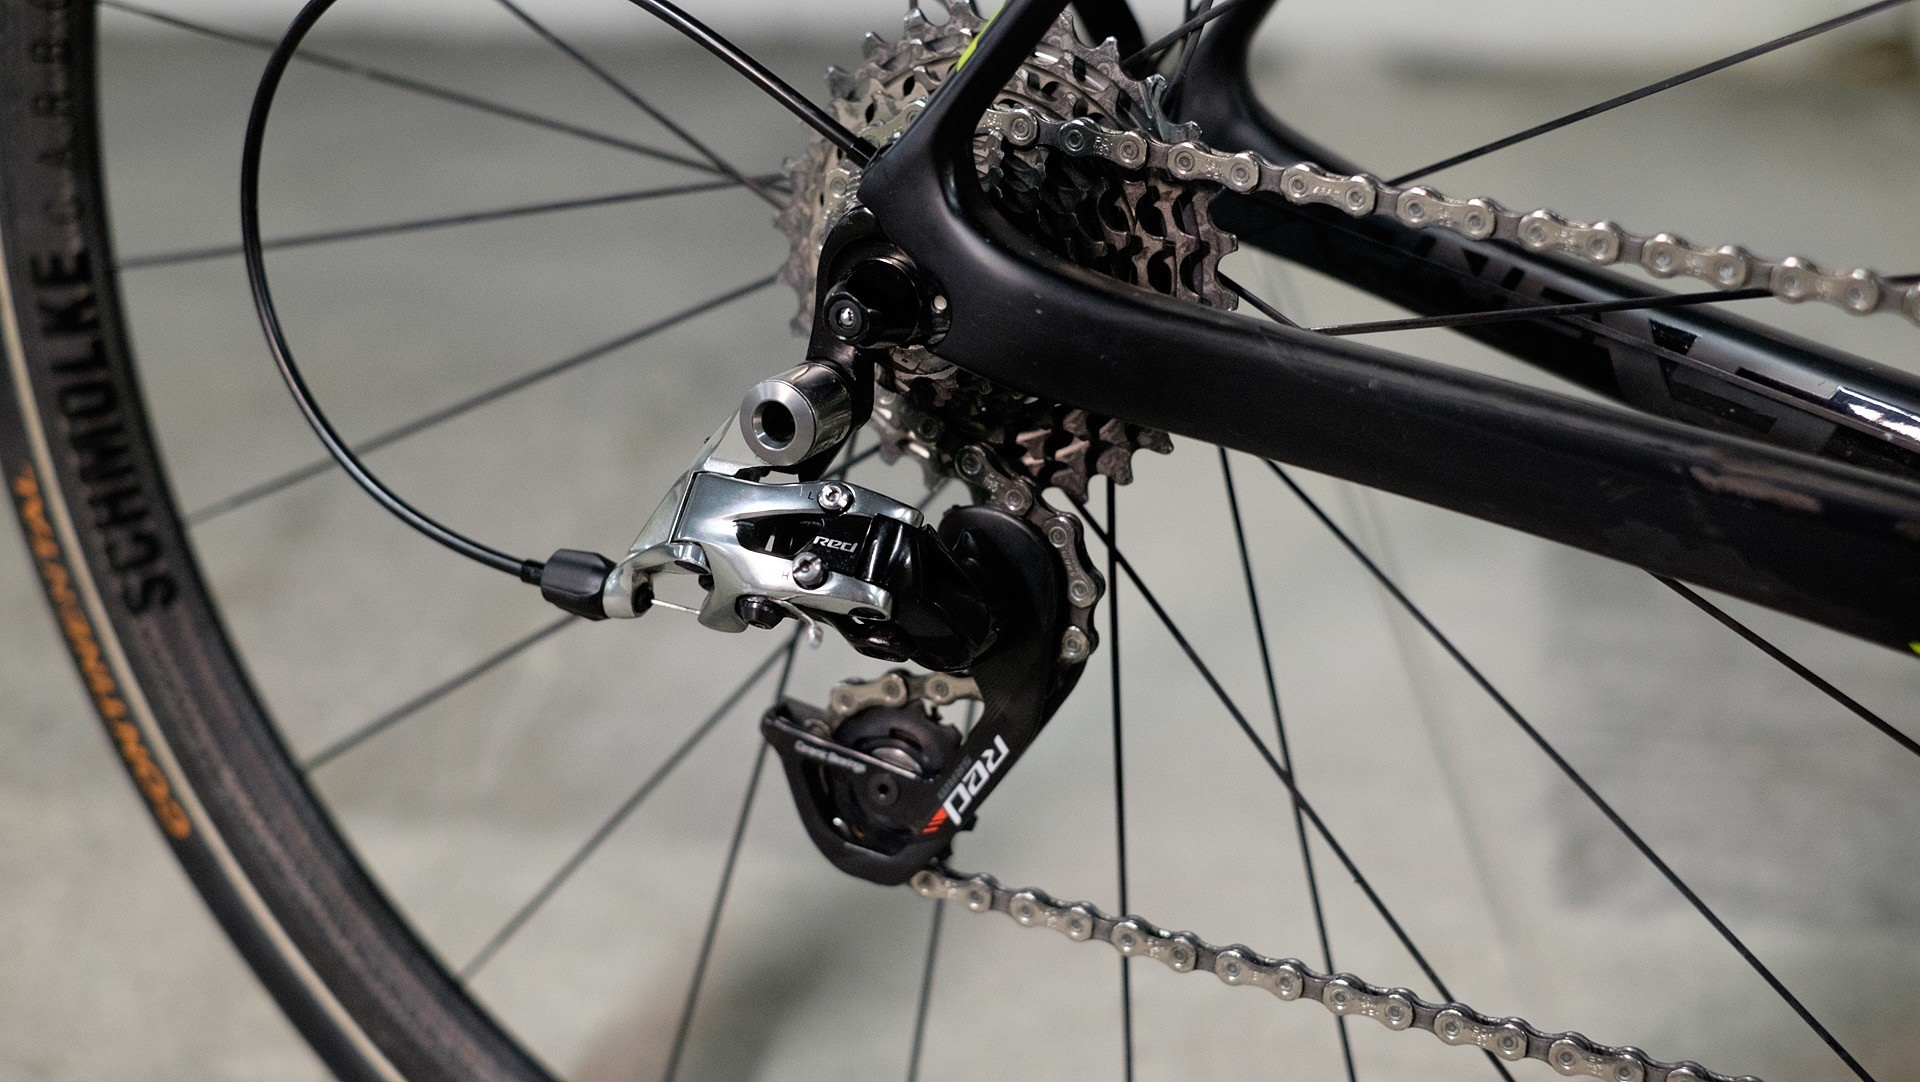 SRAM's Red groupset saved a few grams